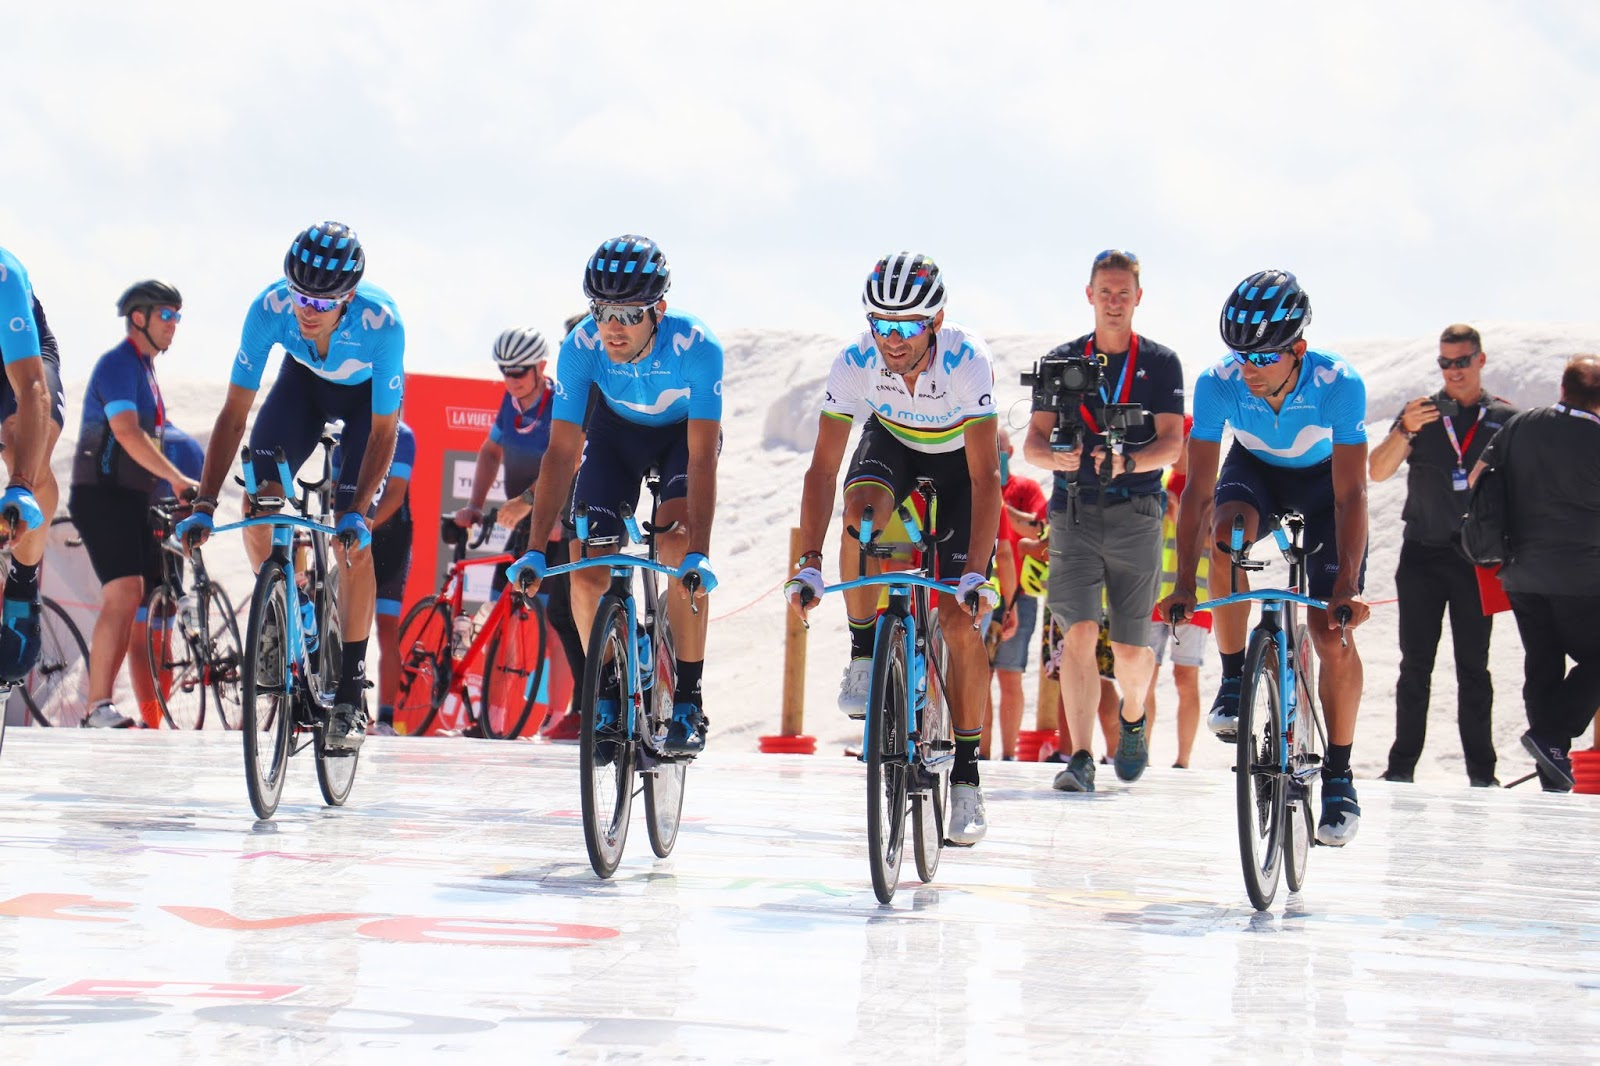 Top 10 List of the Best Spanish Male Cyclists - Valverde